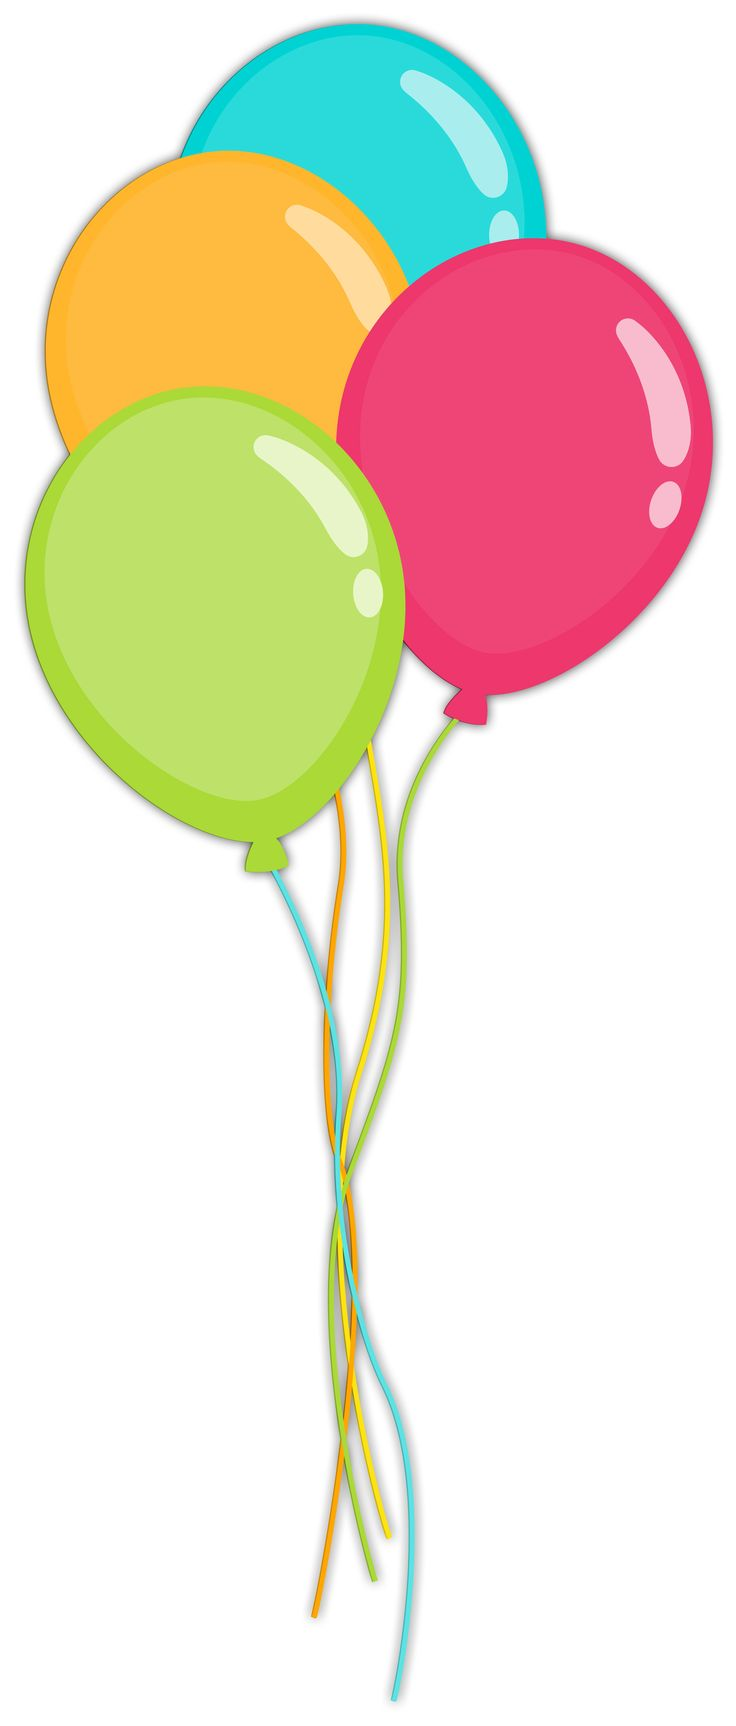 736x1726 Holiday Balloon Clipart, Explore Pictures